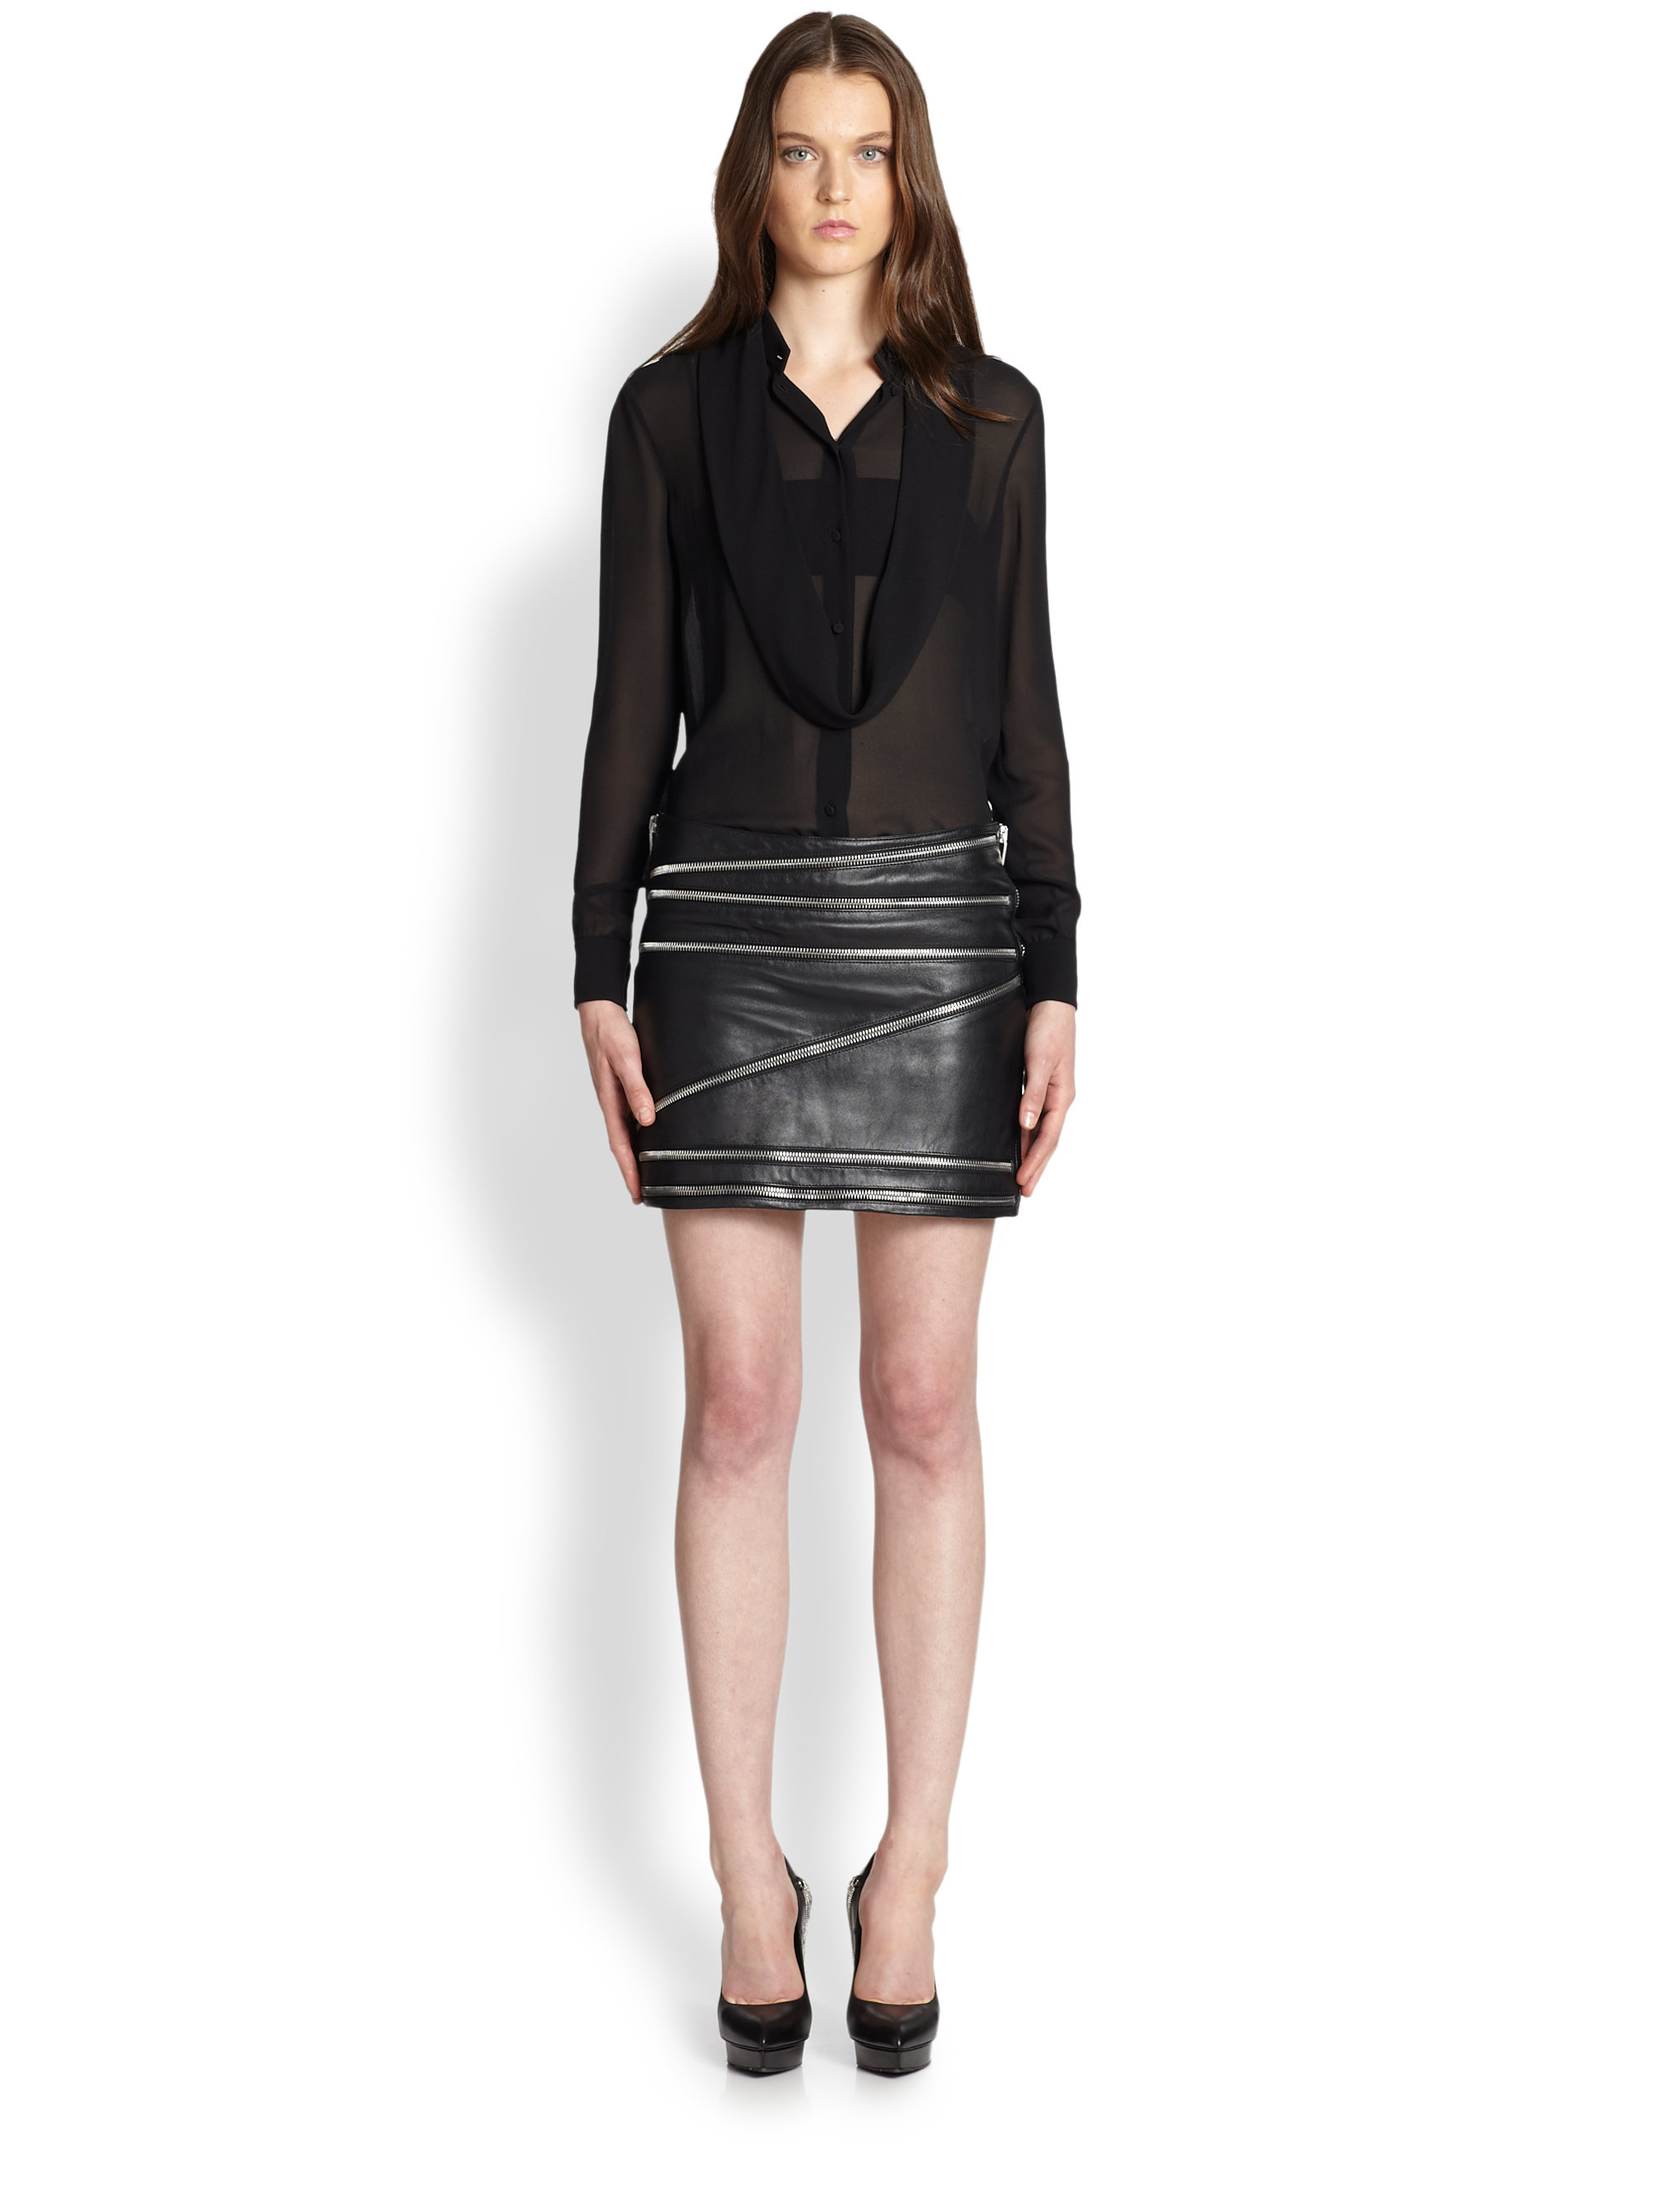 8a7224d1f Gallery. Previously sold at: Saks Fifth Avenue · Women's Black Leather  Skirts Women's Leather Mini Skirts